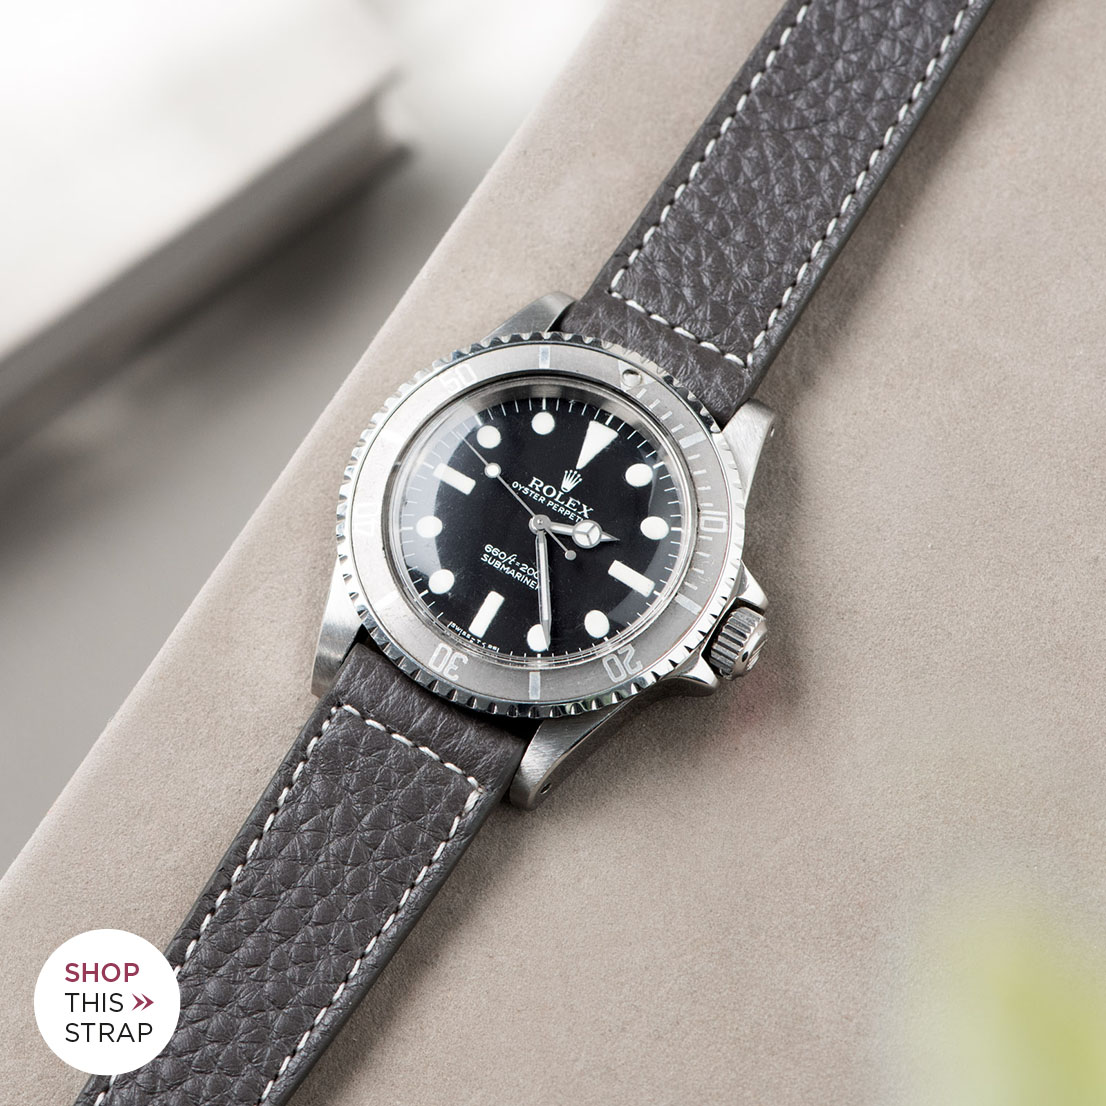 Bulang and Sons_Strap Guide_Rolex Submariner 5513 Faded_ELEPHANT GREY LEATHER WATCH